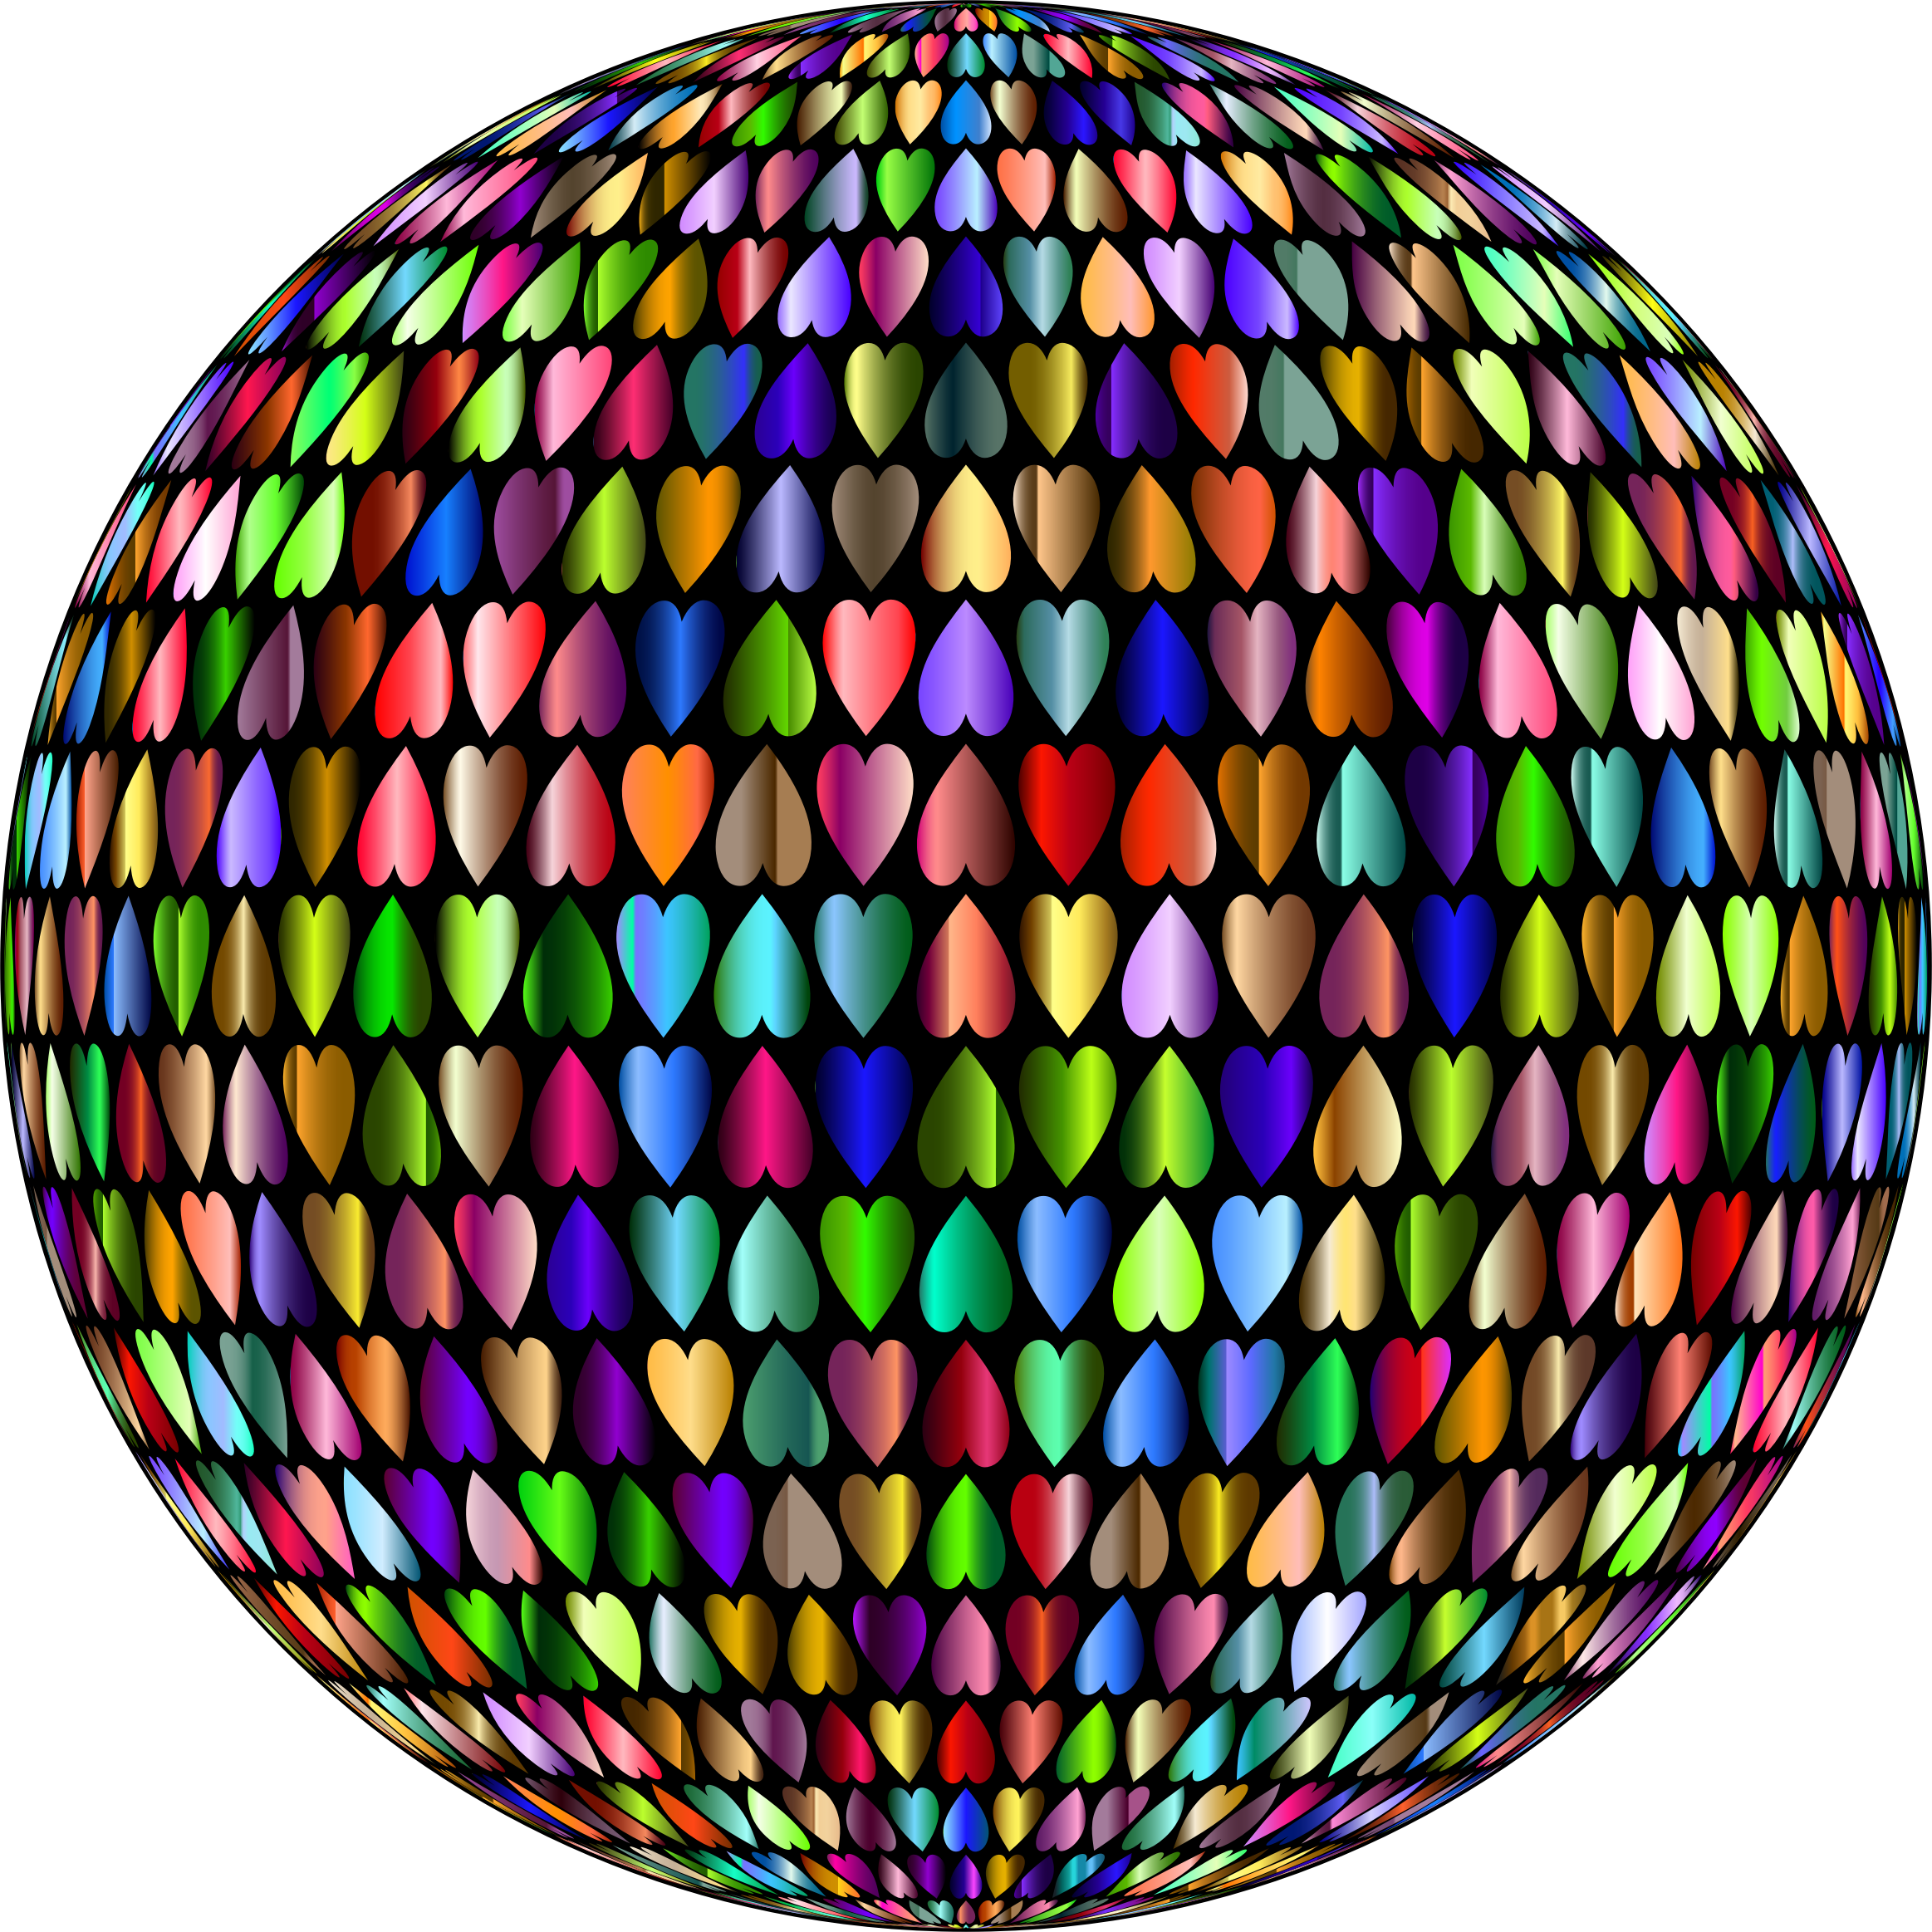 Prismatic Alternating Hearts Sphere 4 by GDJ